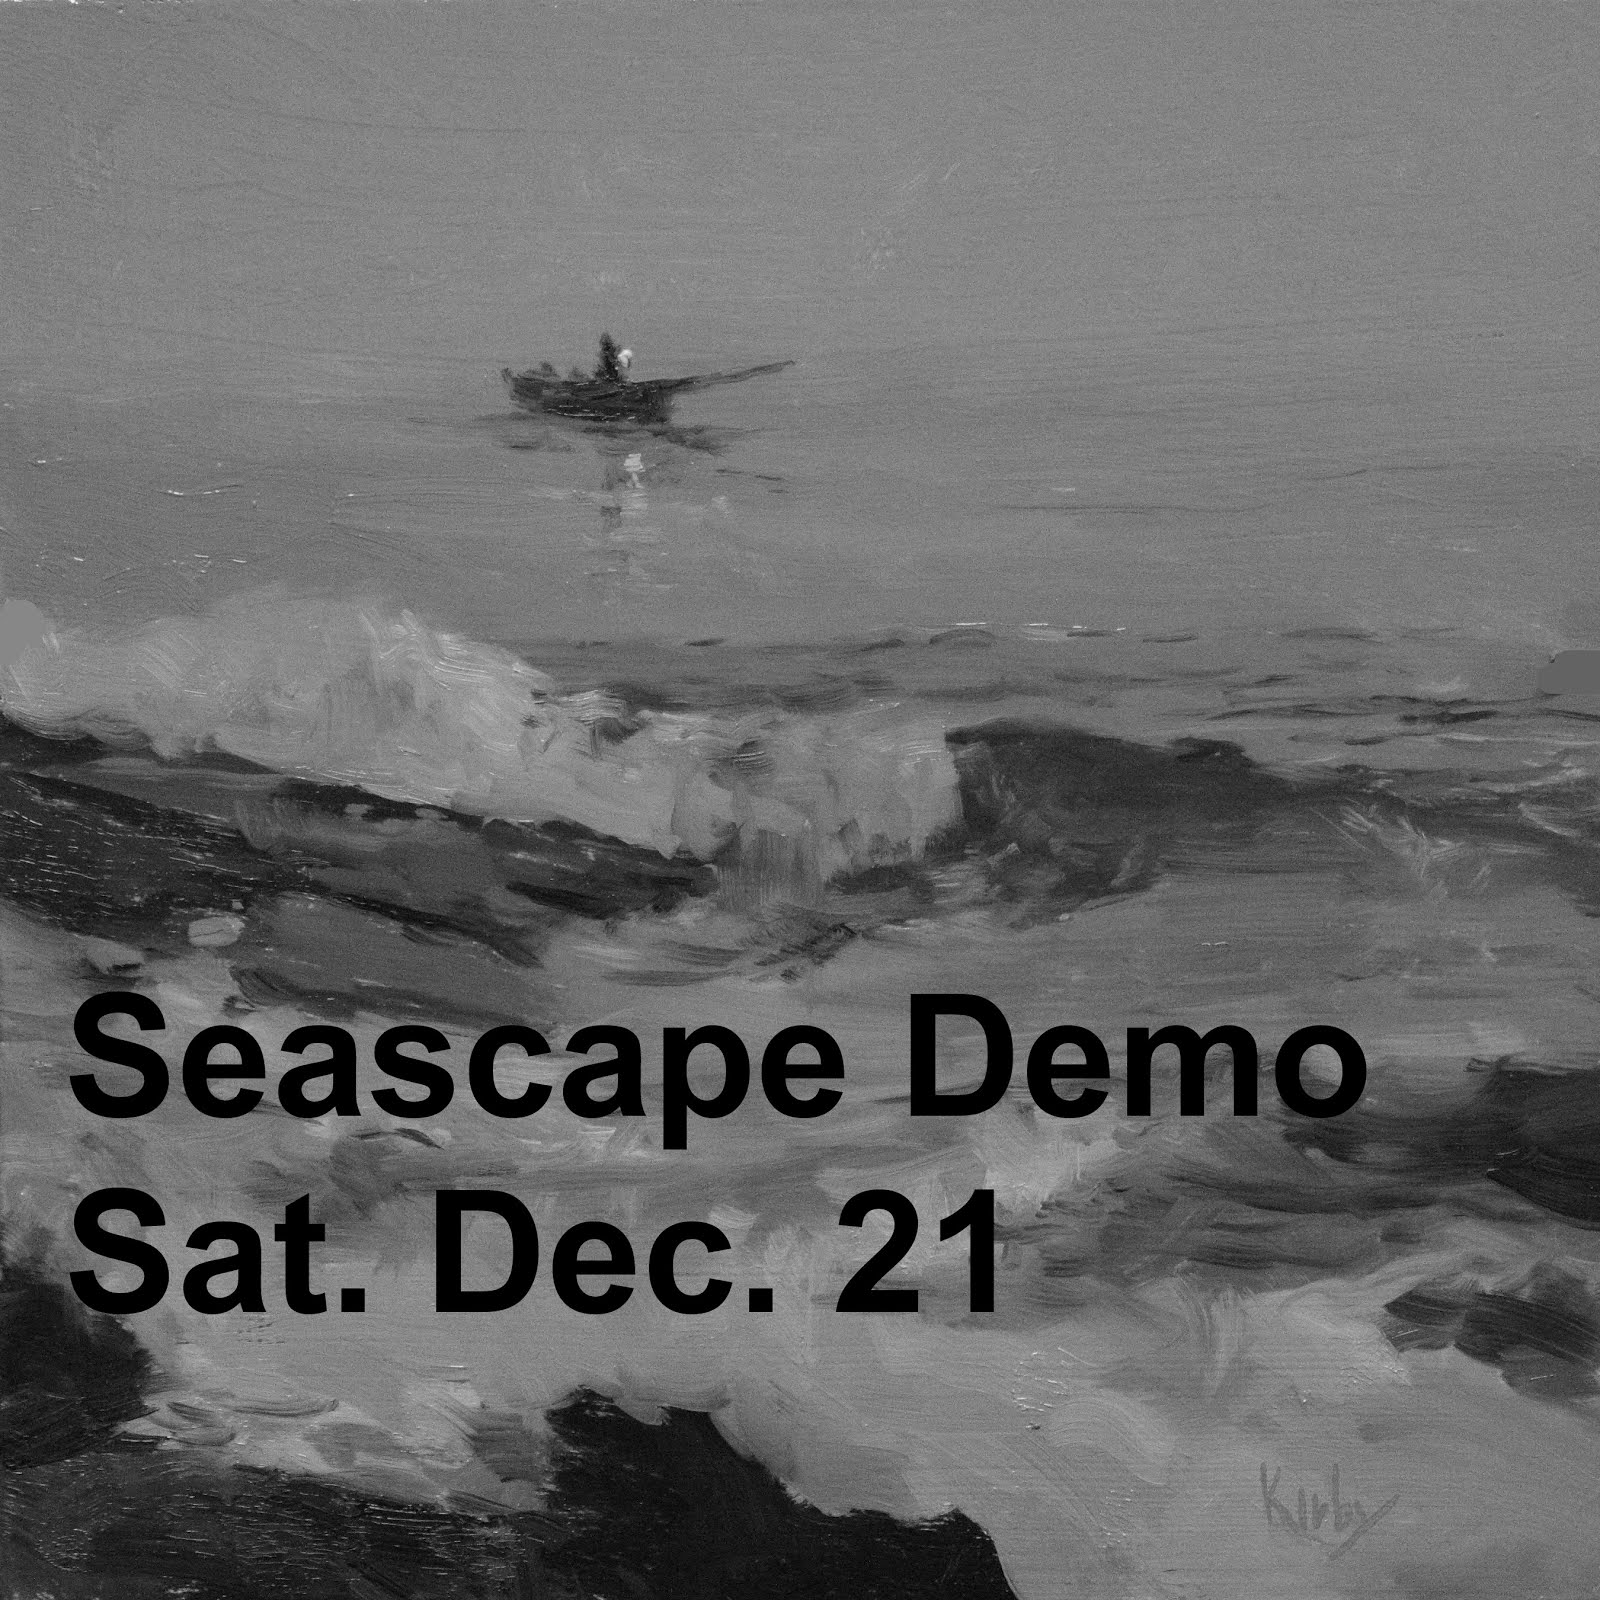 Seascape Demo, Galveston Sat Dec21